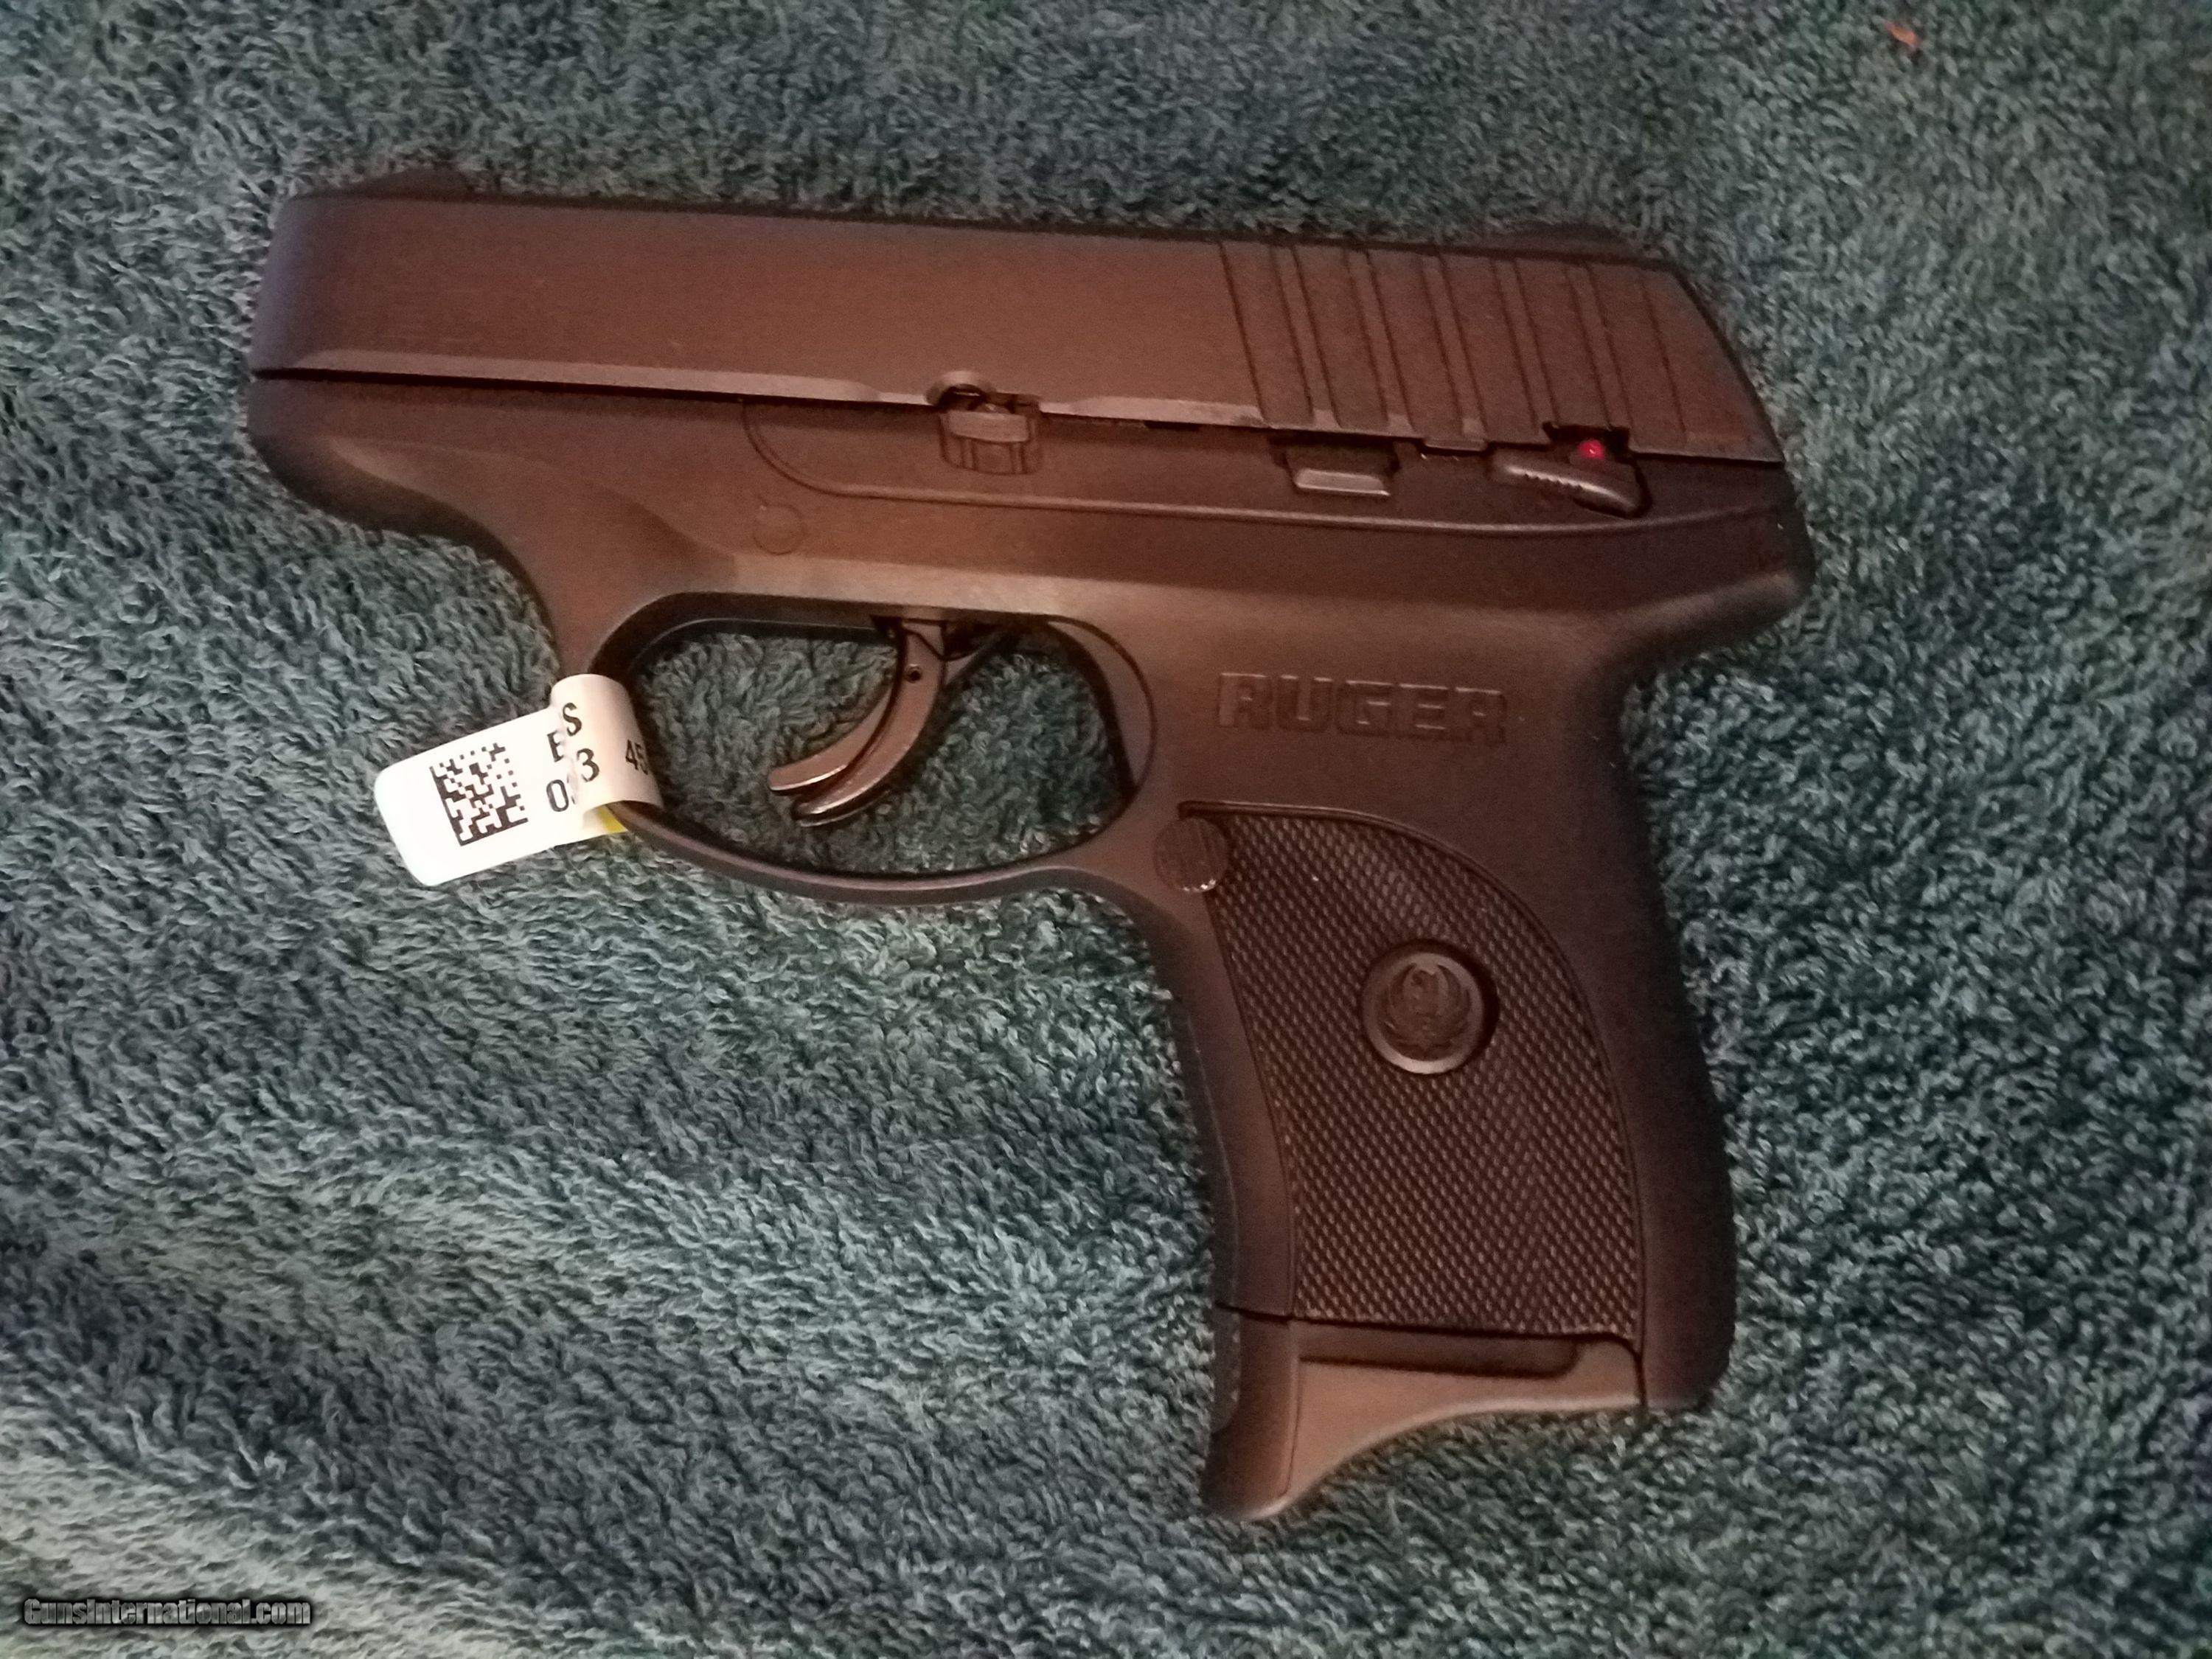 THE NEW EVERY DAY CARRY (EC9S) RUGER EC9S for sale